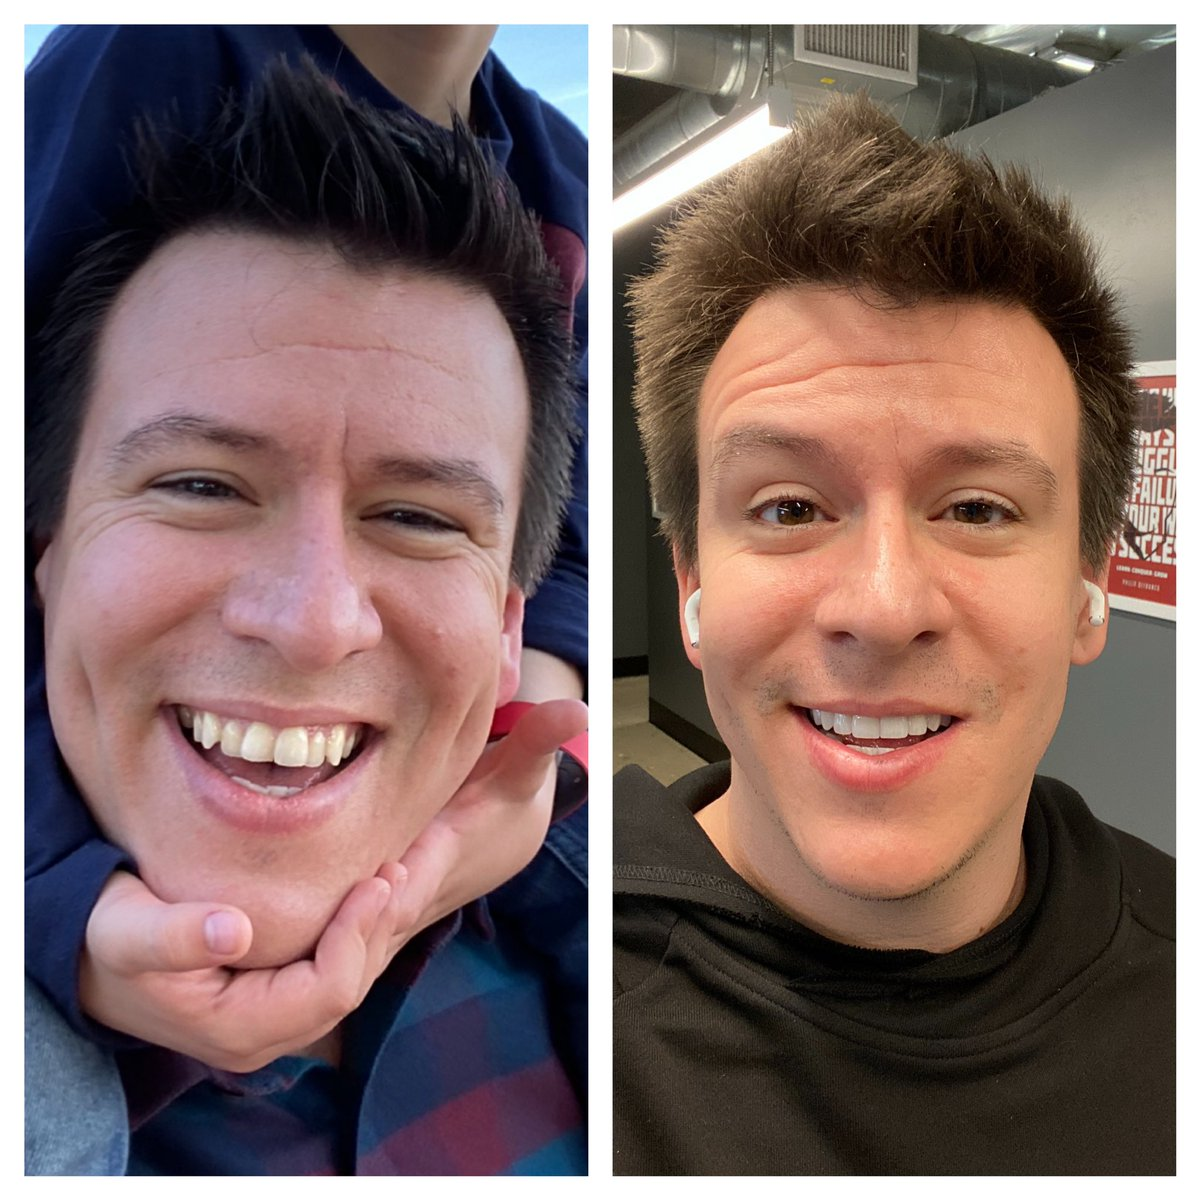 Philip Defranco On Twitter Oh Hi Philip defranco is taking a short break from his show to help his mental health (picture: philip defranco on twitter oh hi